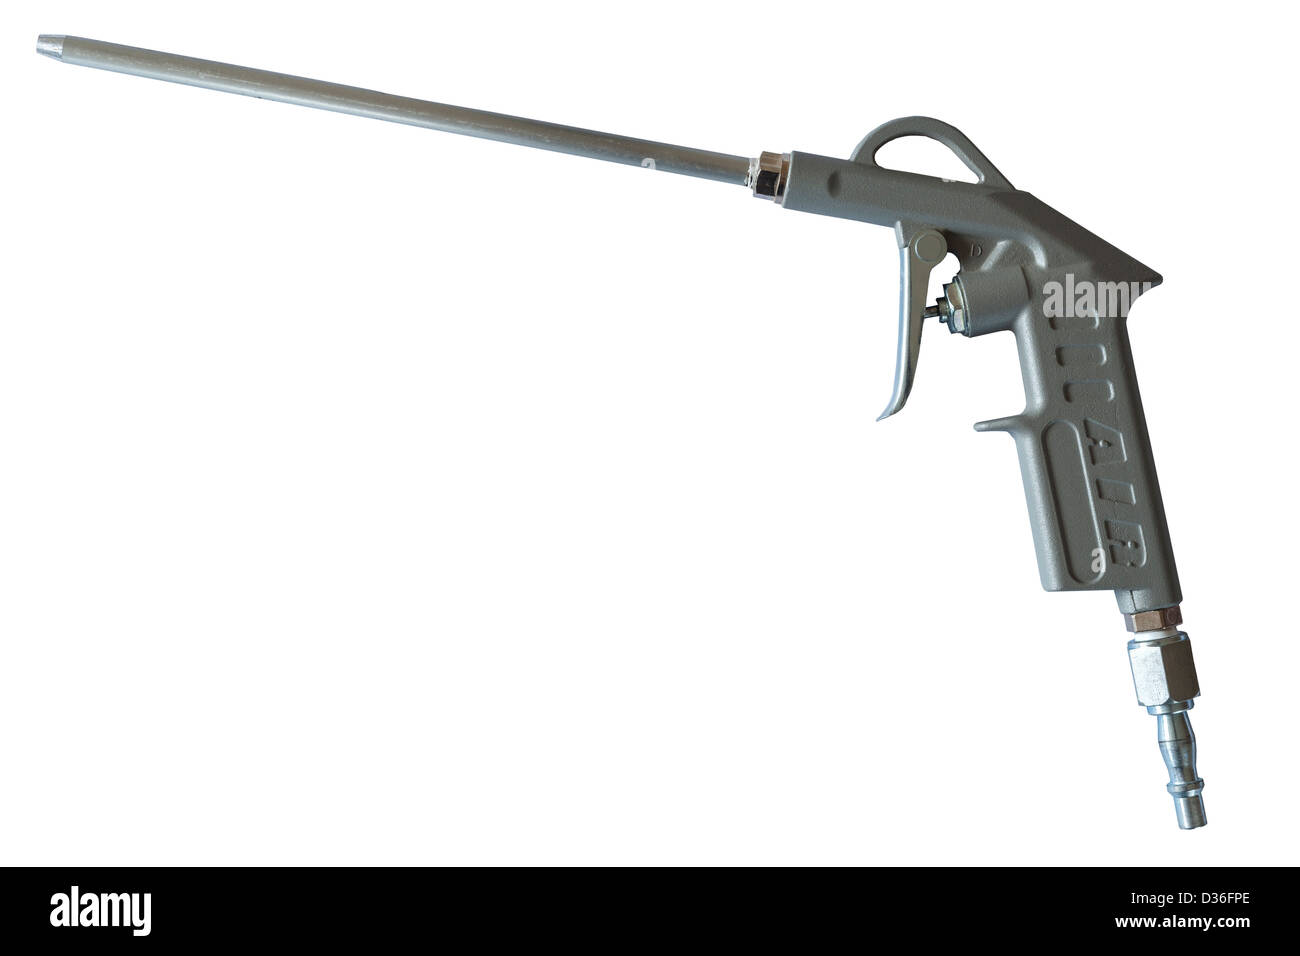 An air duster tool for use with an air compressor on a white background - Stock Image